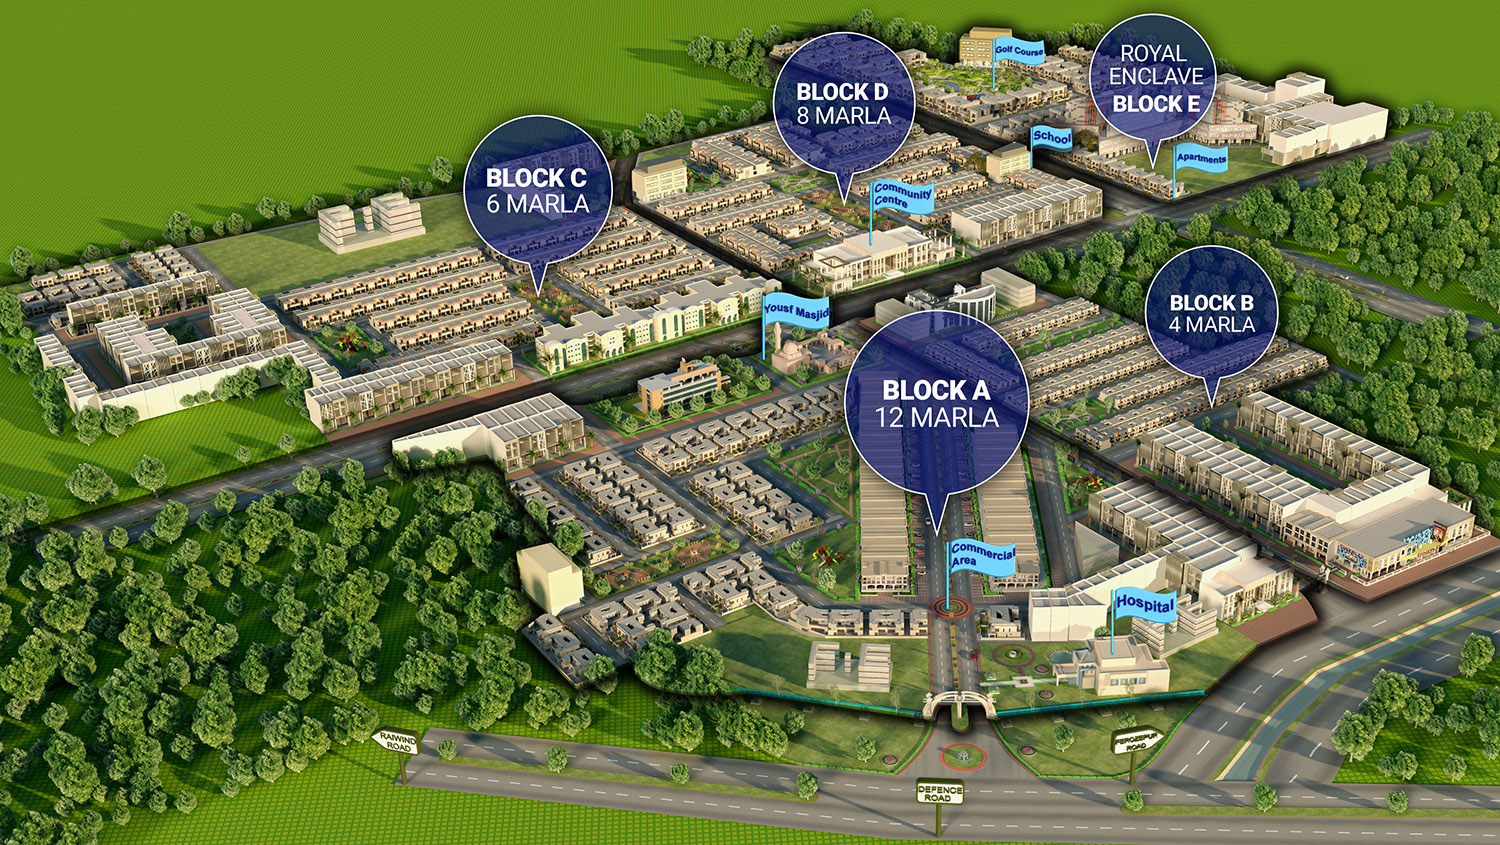 royal residencia map www.propertycentral.pk